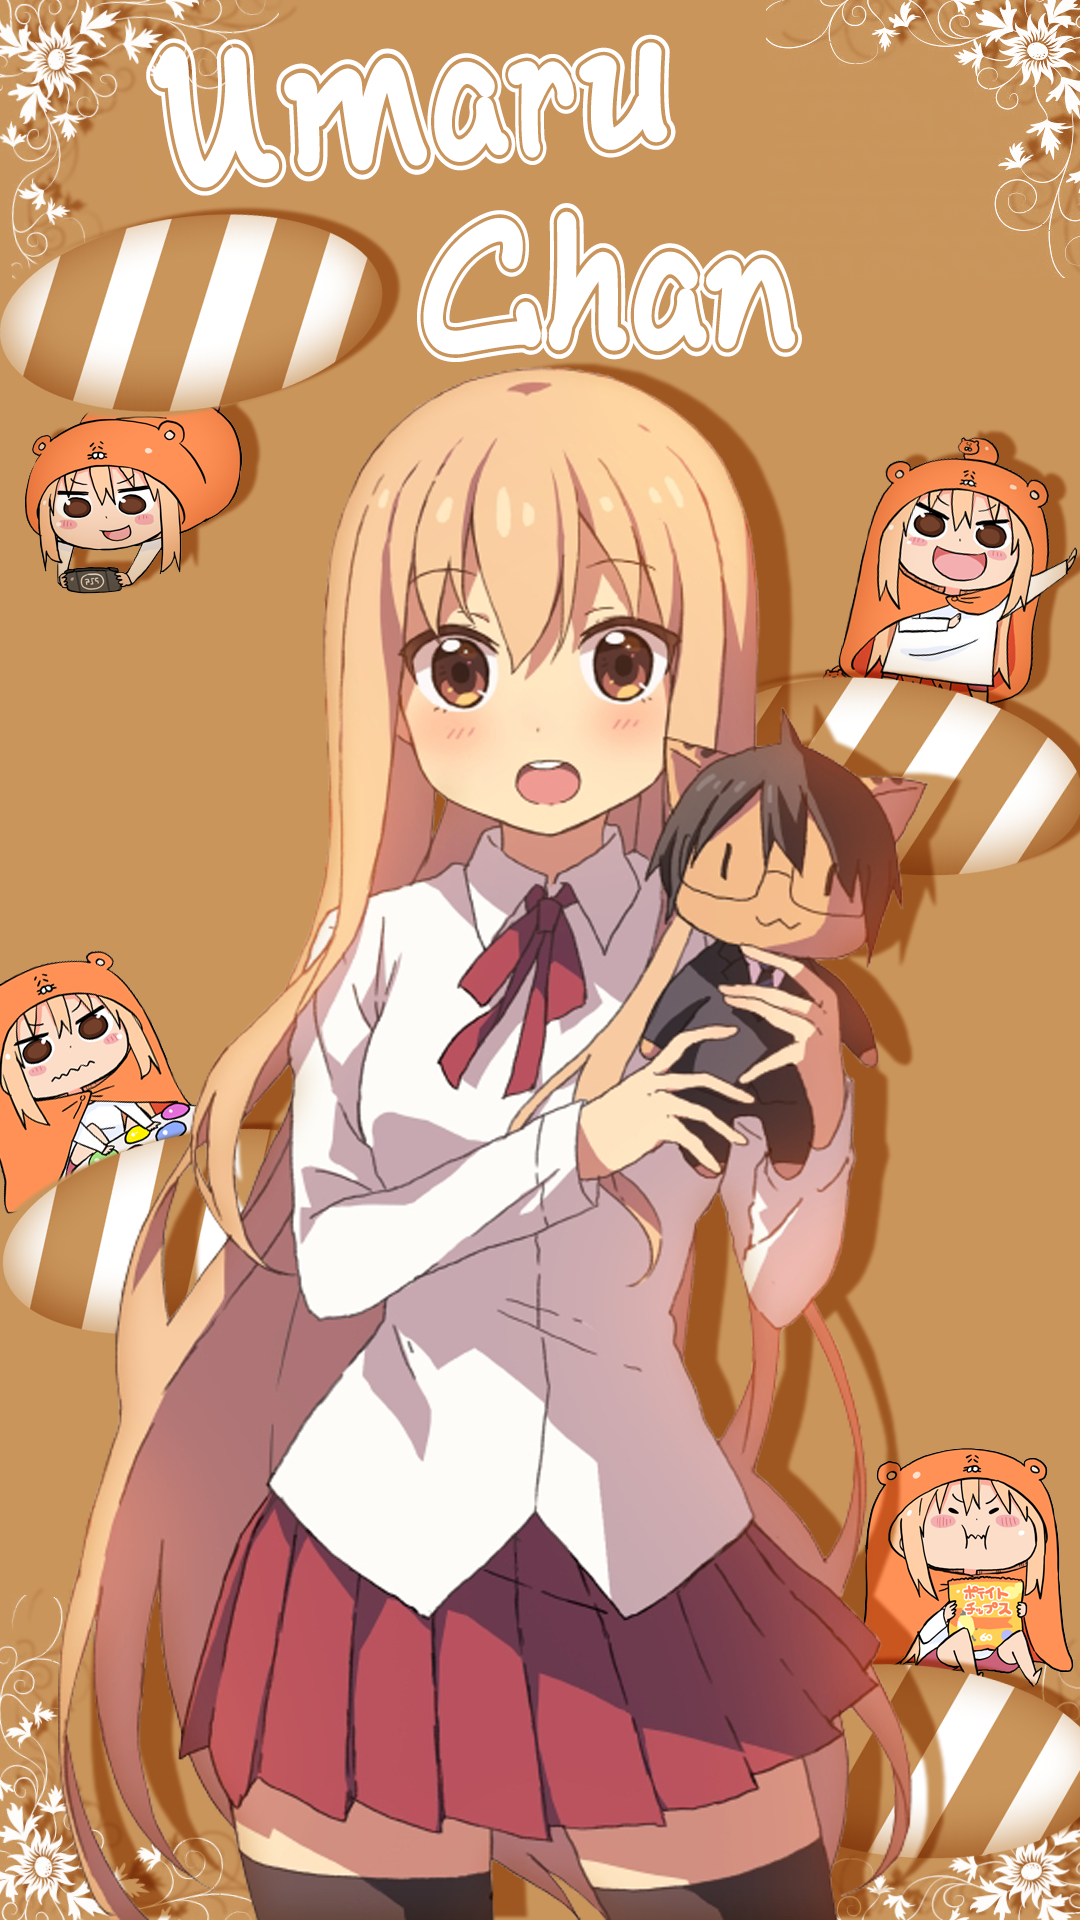 Pin by Anna McNeely on Himouto! UmaruChan Anime